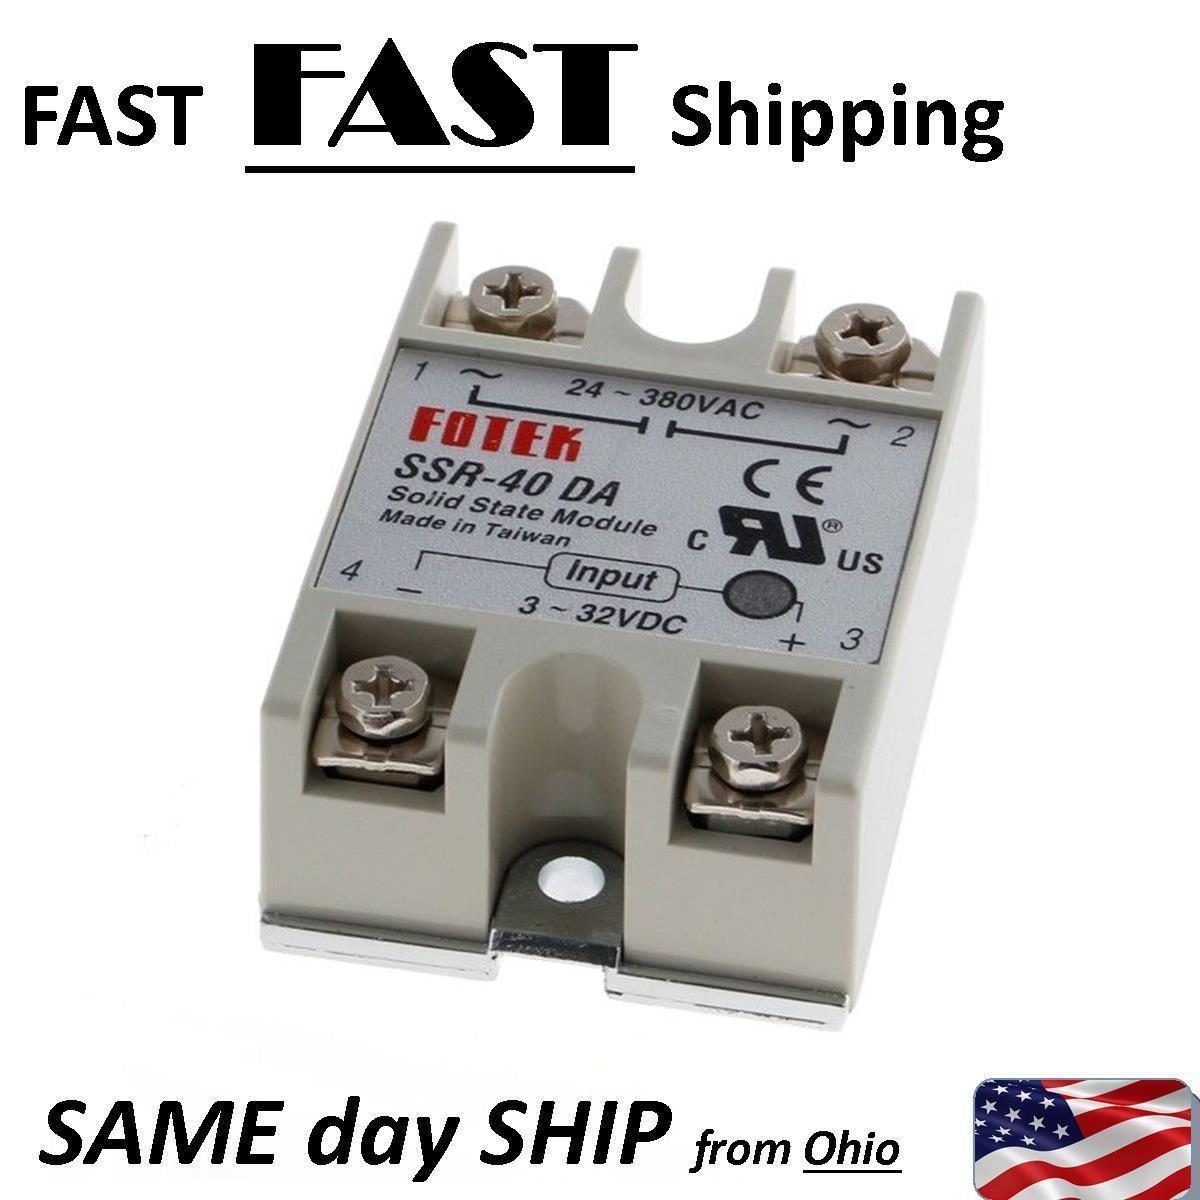 40 Amp Solid State Relay Dc 3v 5v 10v And 50 Similar Items New Schneider Electric Zelior Solidstate Relays S L1600